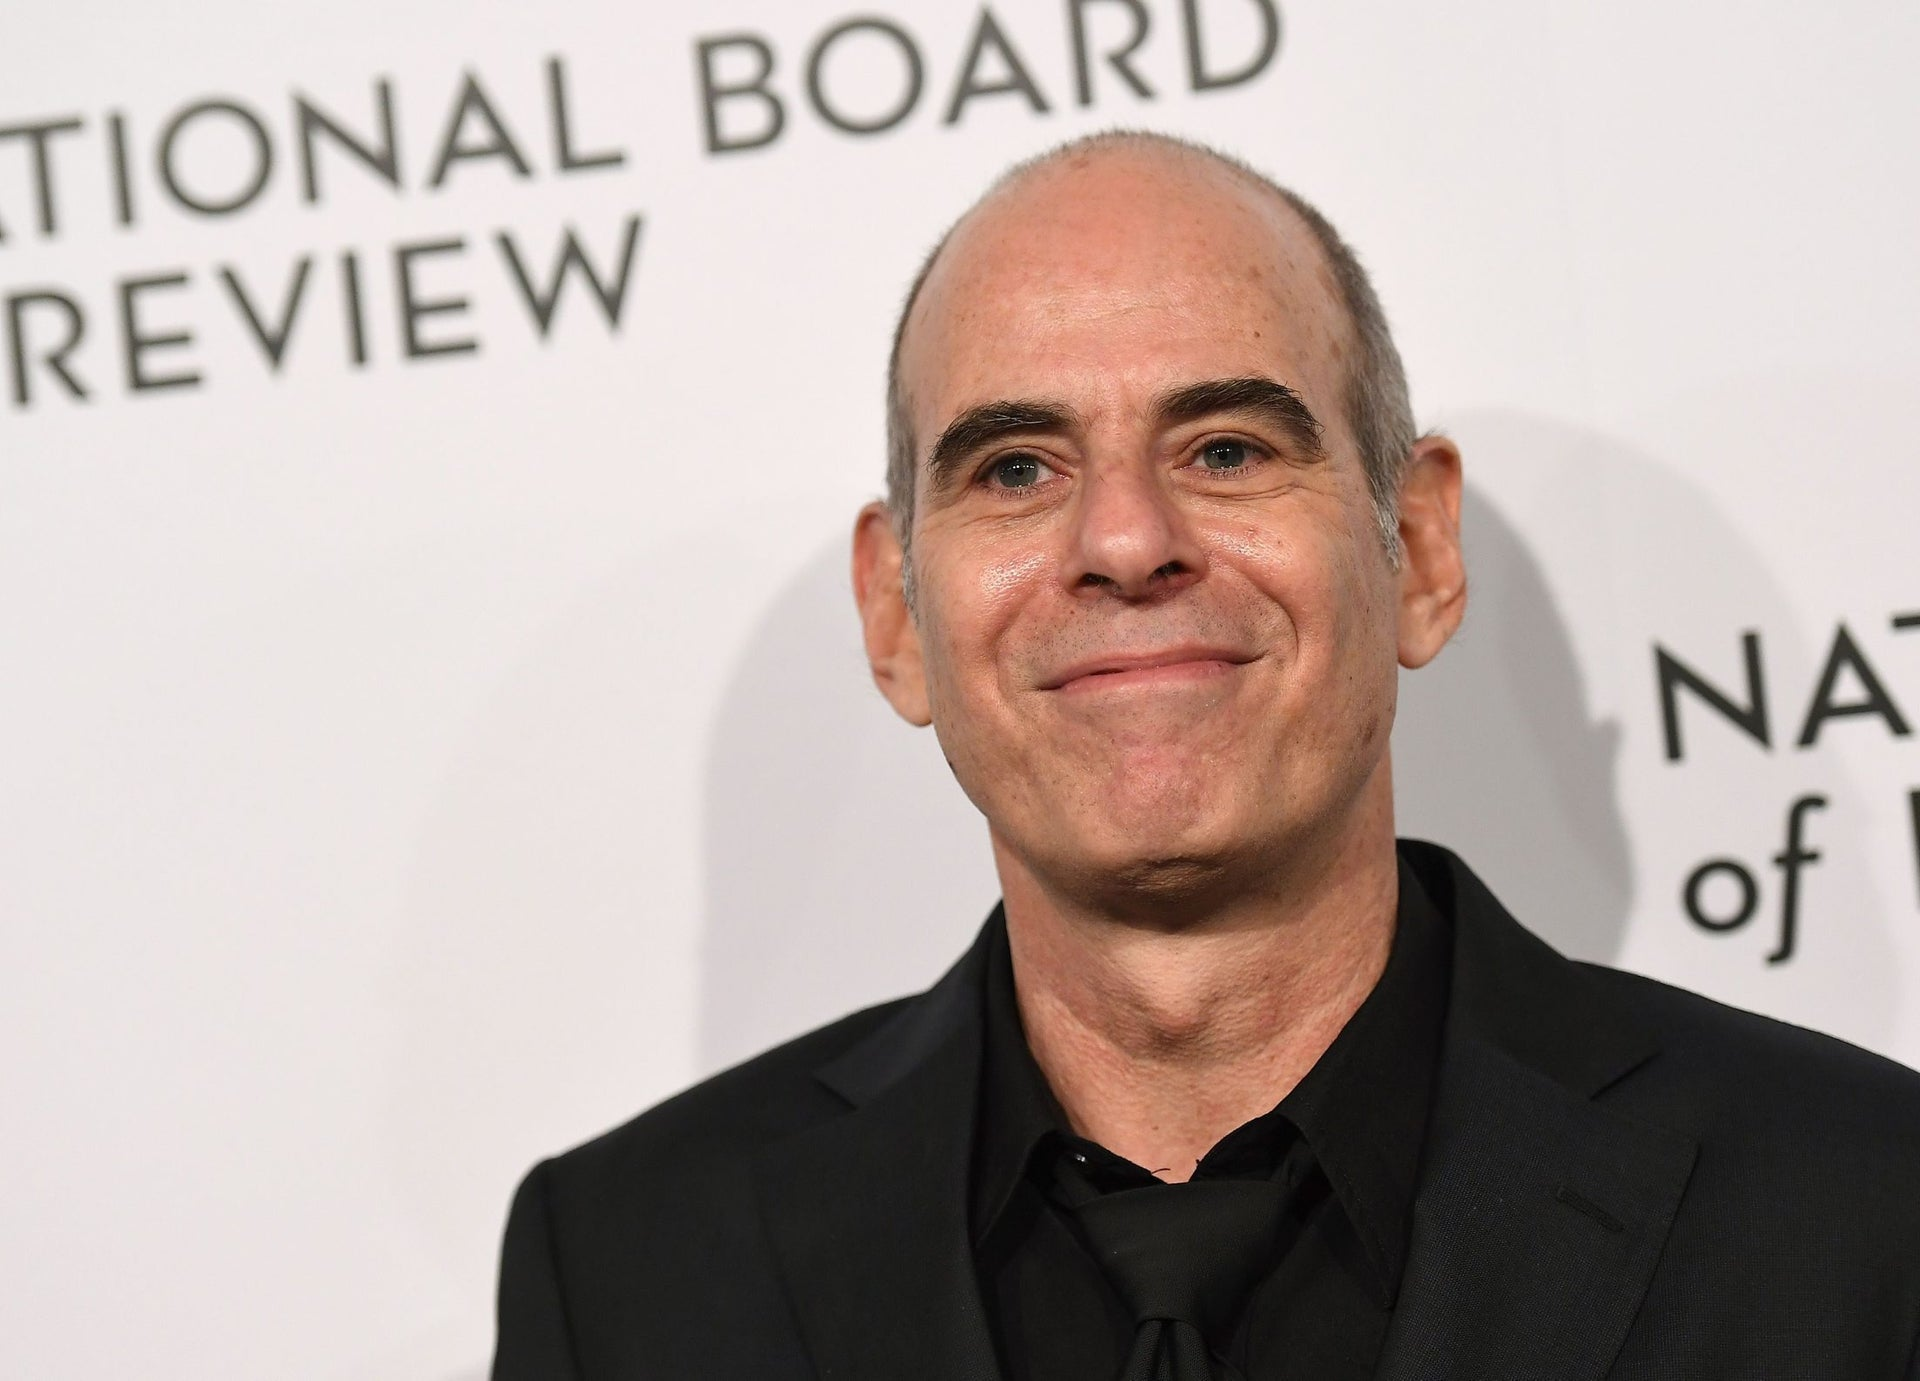 Samuel Maoz attends the 2018 National Board of Review Awards Gala. Will he be the first director to ever win an Oscar for an Israeli film?